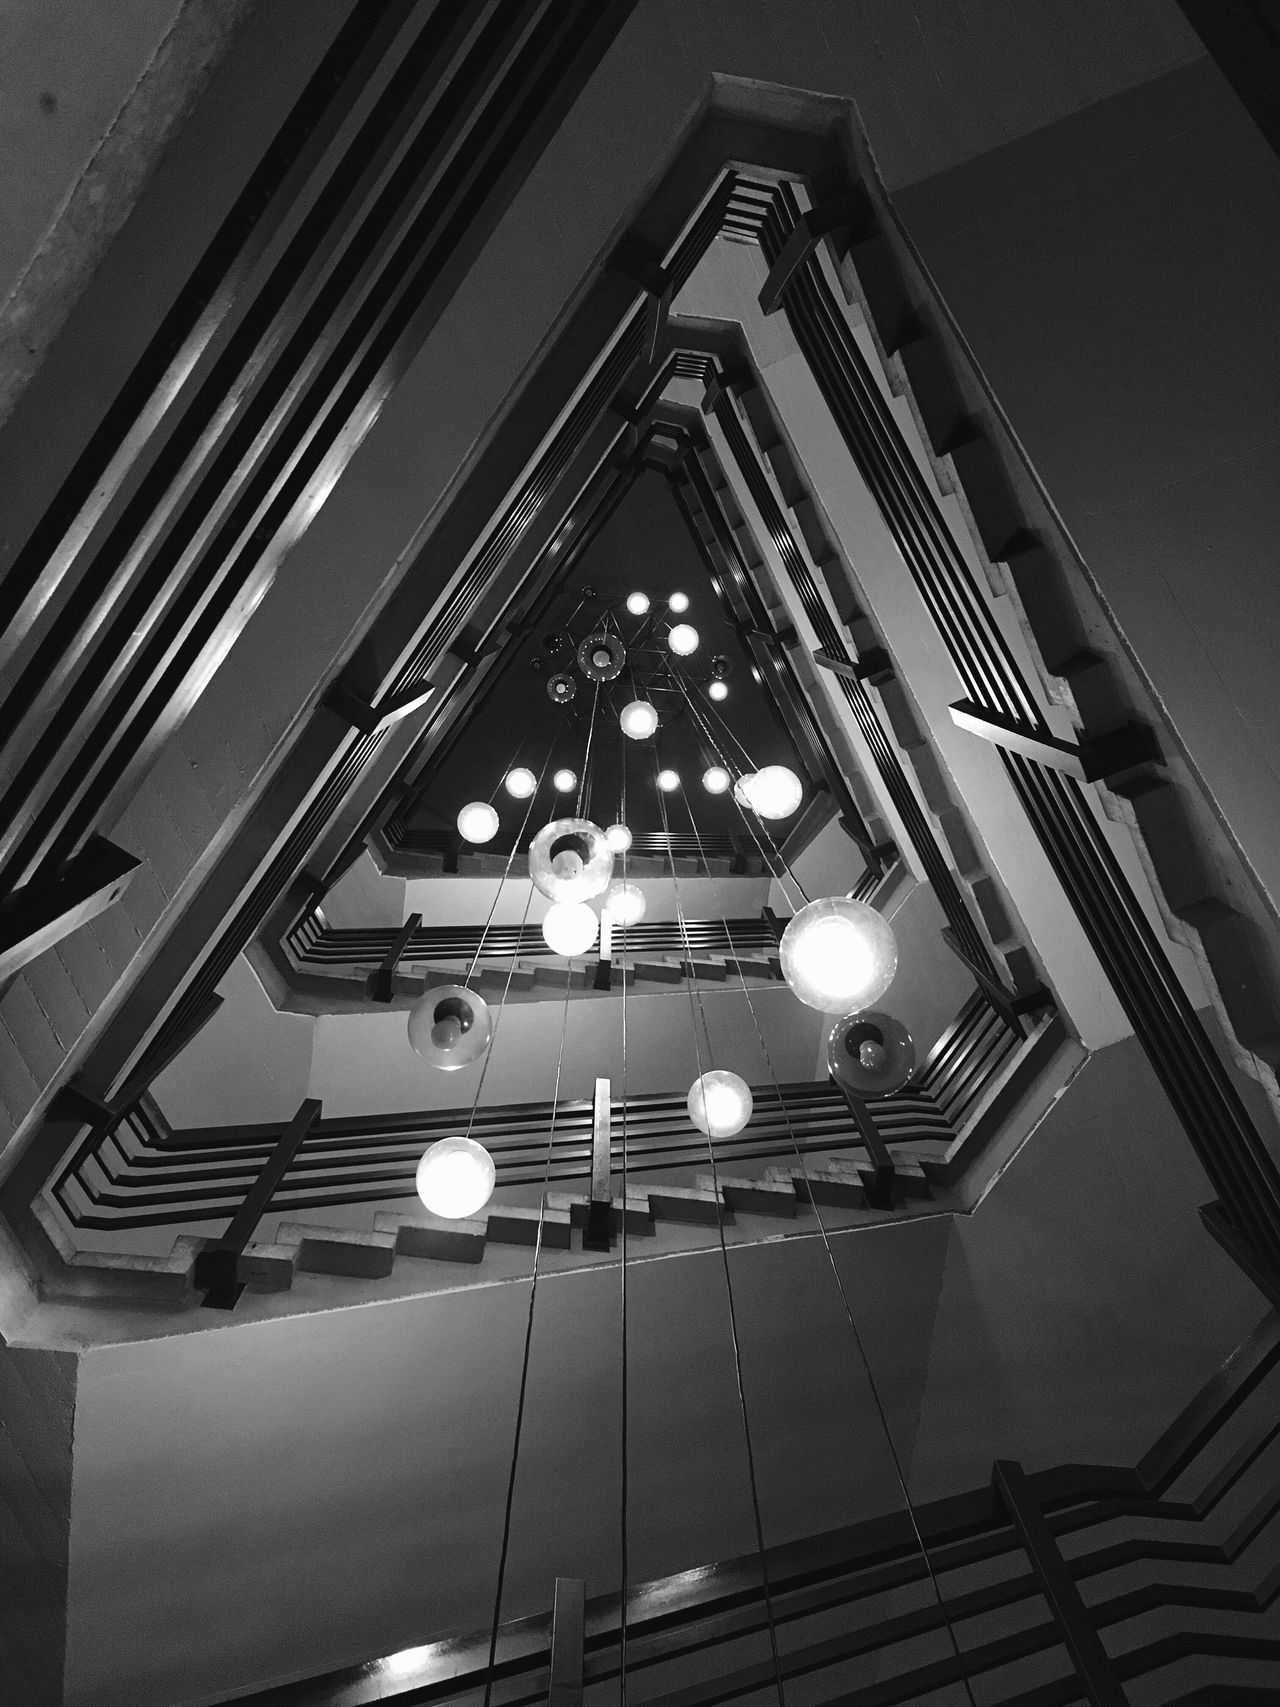 Low Angle View Architecture Built Structure Illuminated No People Indoors  Day Shadowplay Stairs Stairways Best Of Stairways Shadows & Lights Light And Shadow Black And White Blackandwhite Blackandwhite Photography Black & White The World Needs More Spiral Staircases Architectureporn Lighting Equipment Berliner Ansichten Staircase